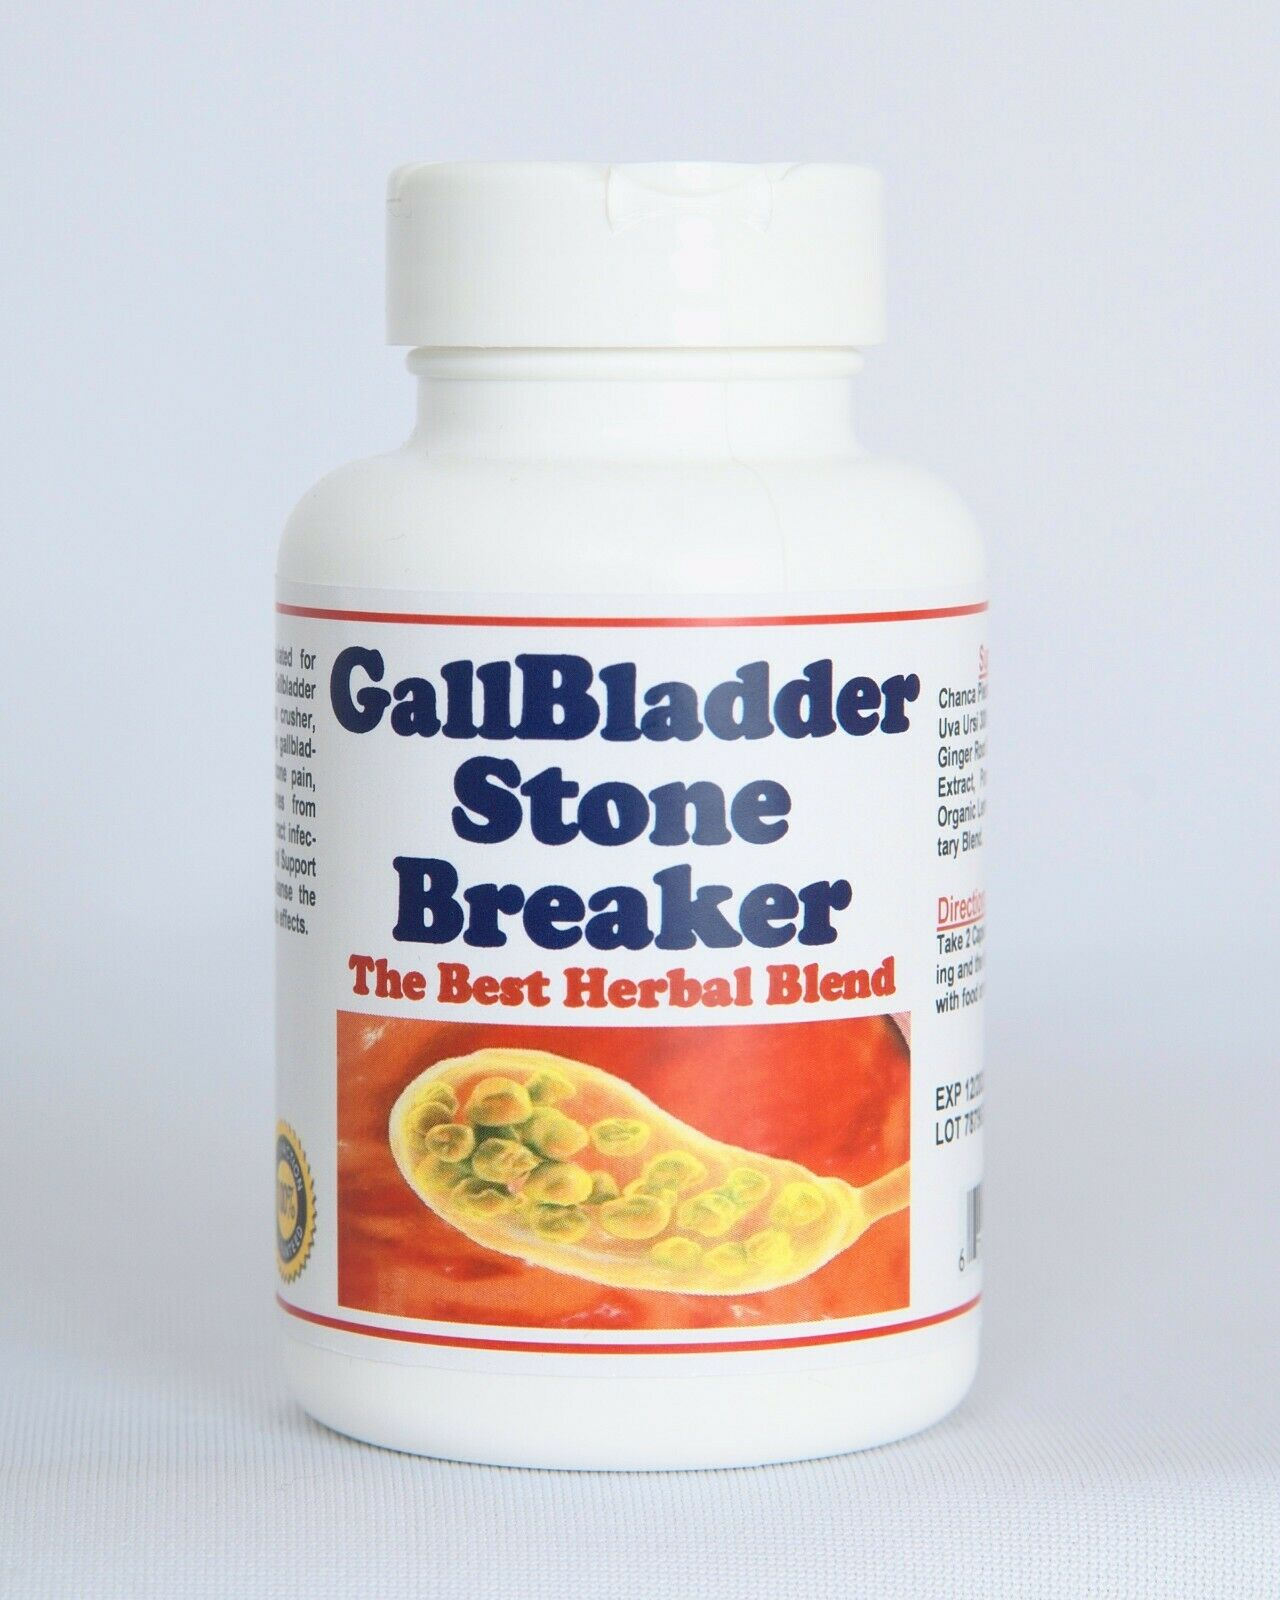 GALLBLADDER STONE BREAKER to Treat & Prevent - ORIGINAL - BUY CHEAPLY PAY DEARLY